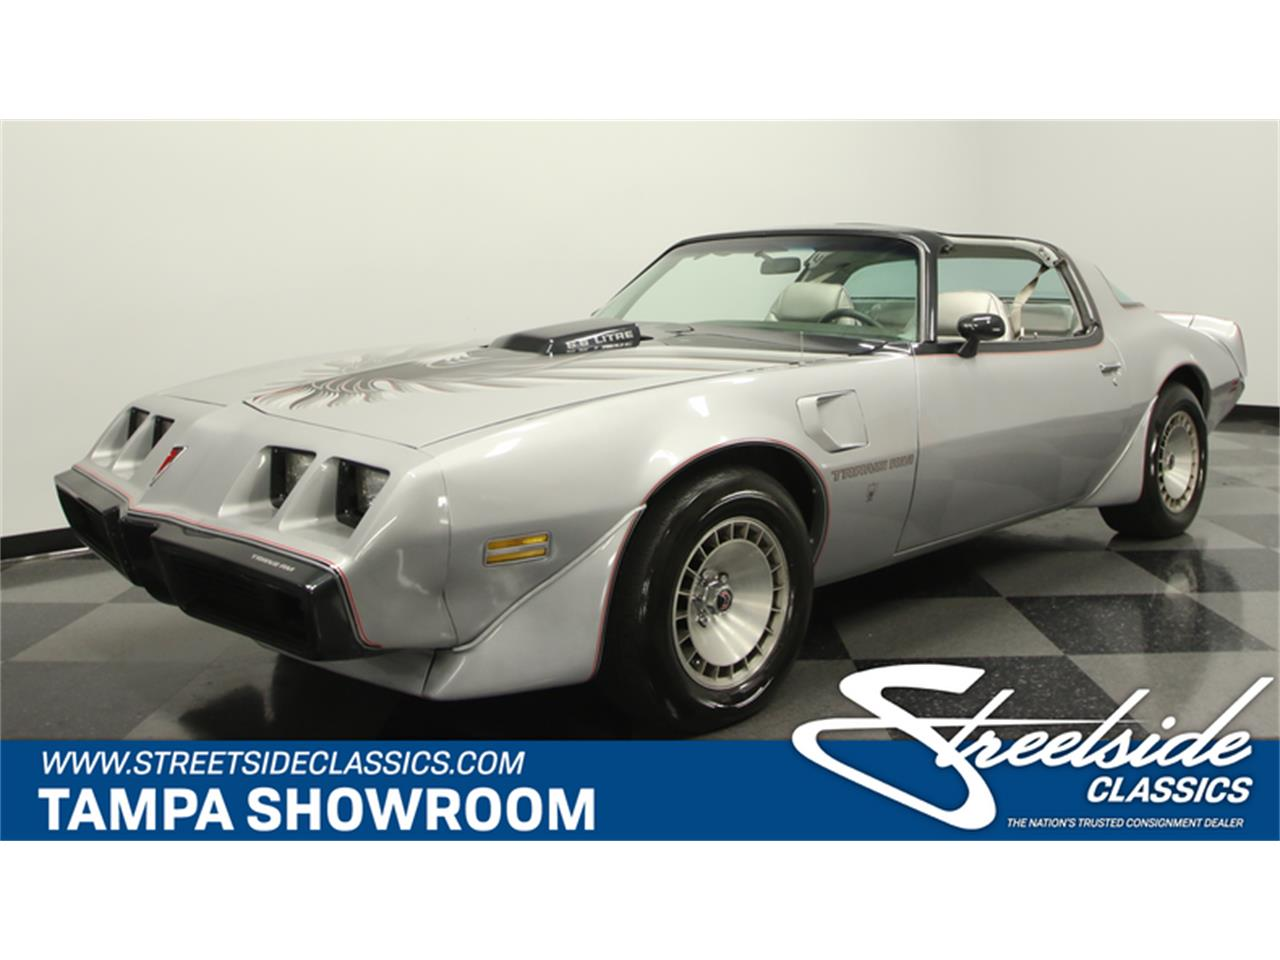 Large Picture of '79 Pontiac Firebird located in Florida - $19,995.00 Offered by Streetside Classics - Tampa - N785